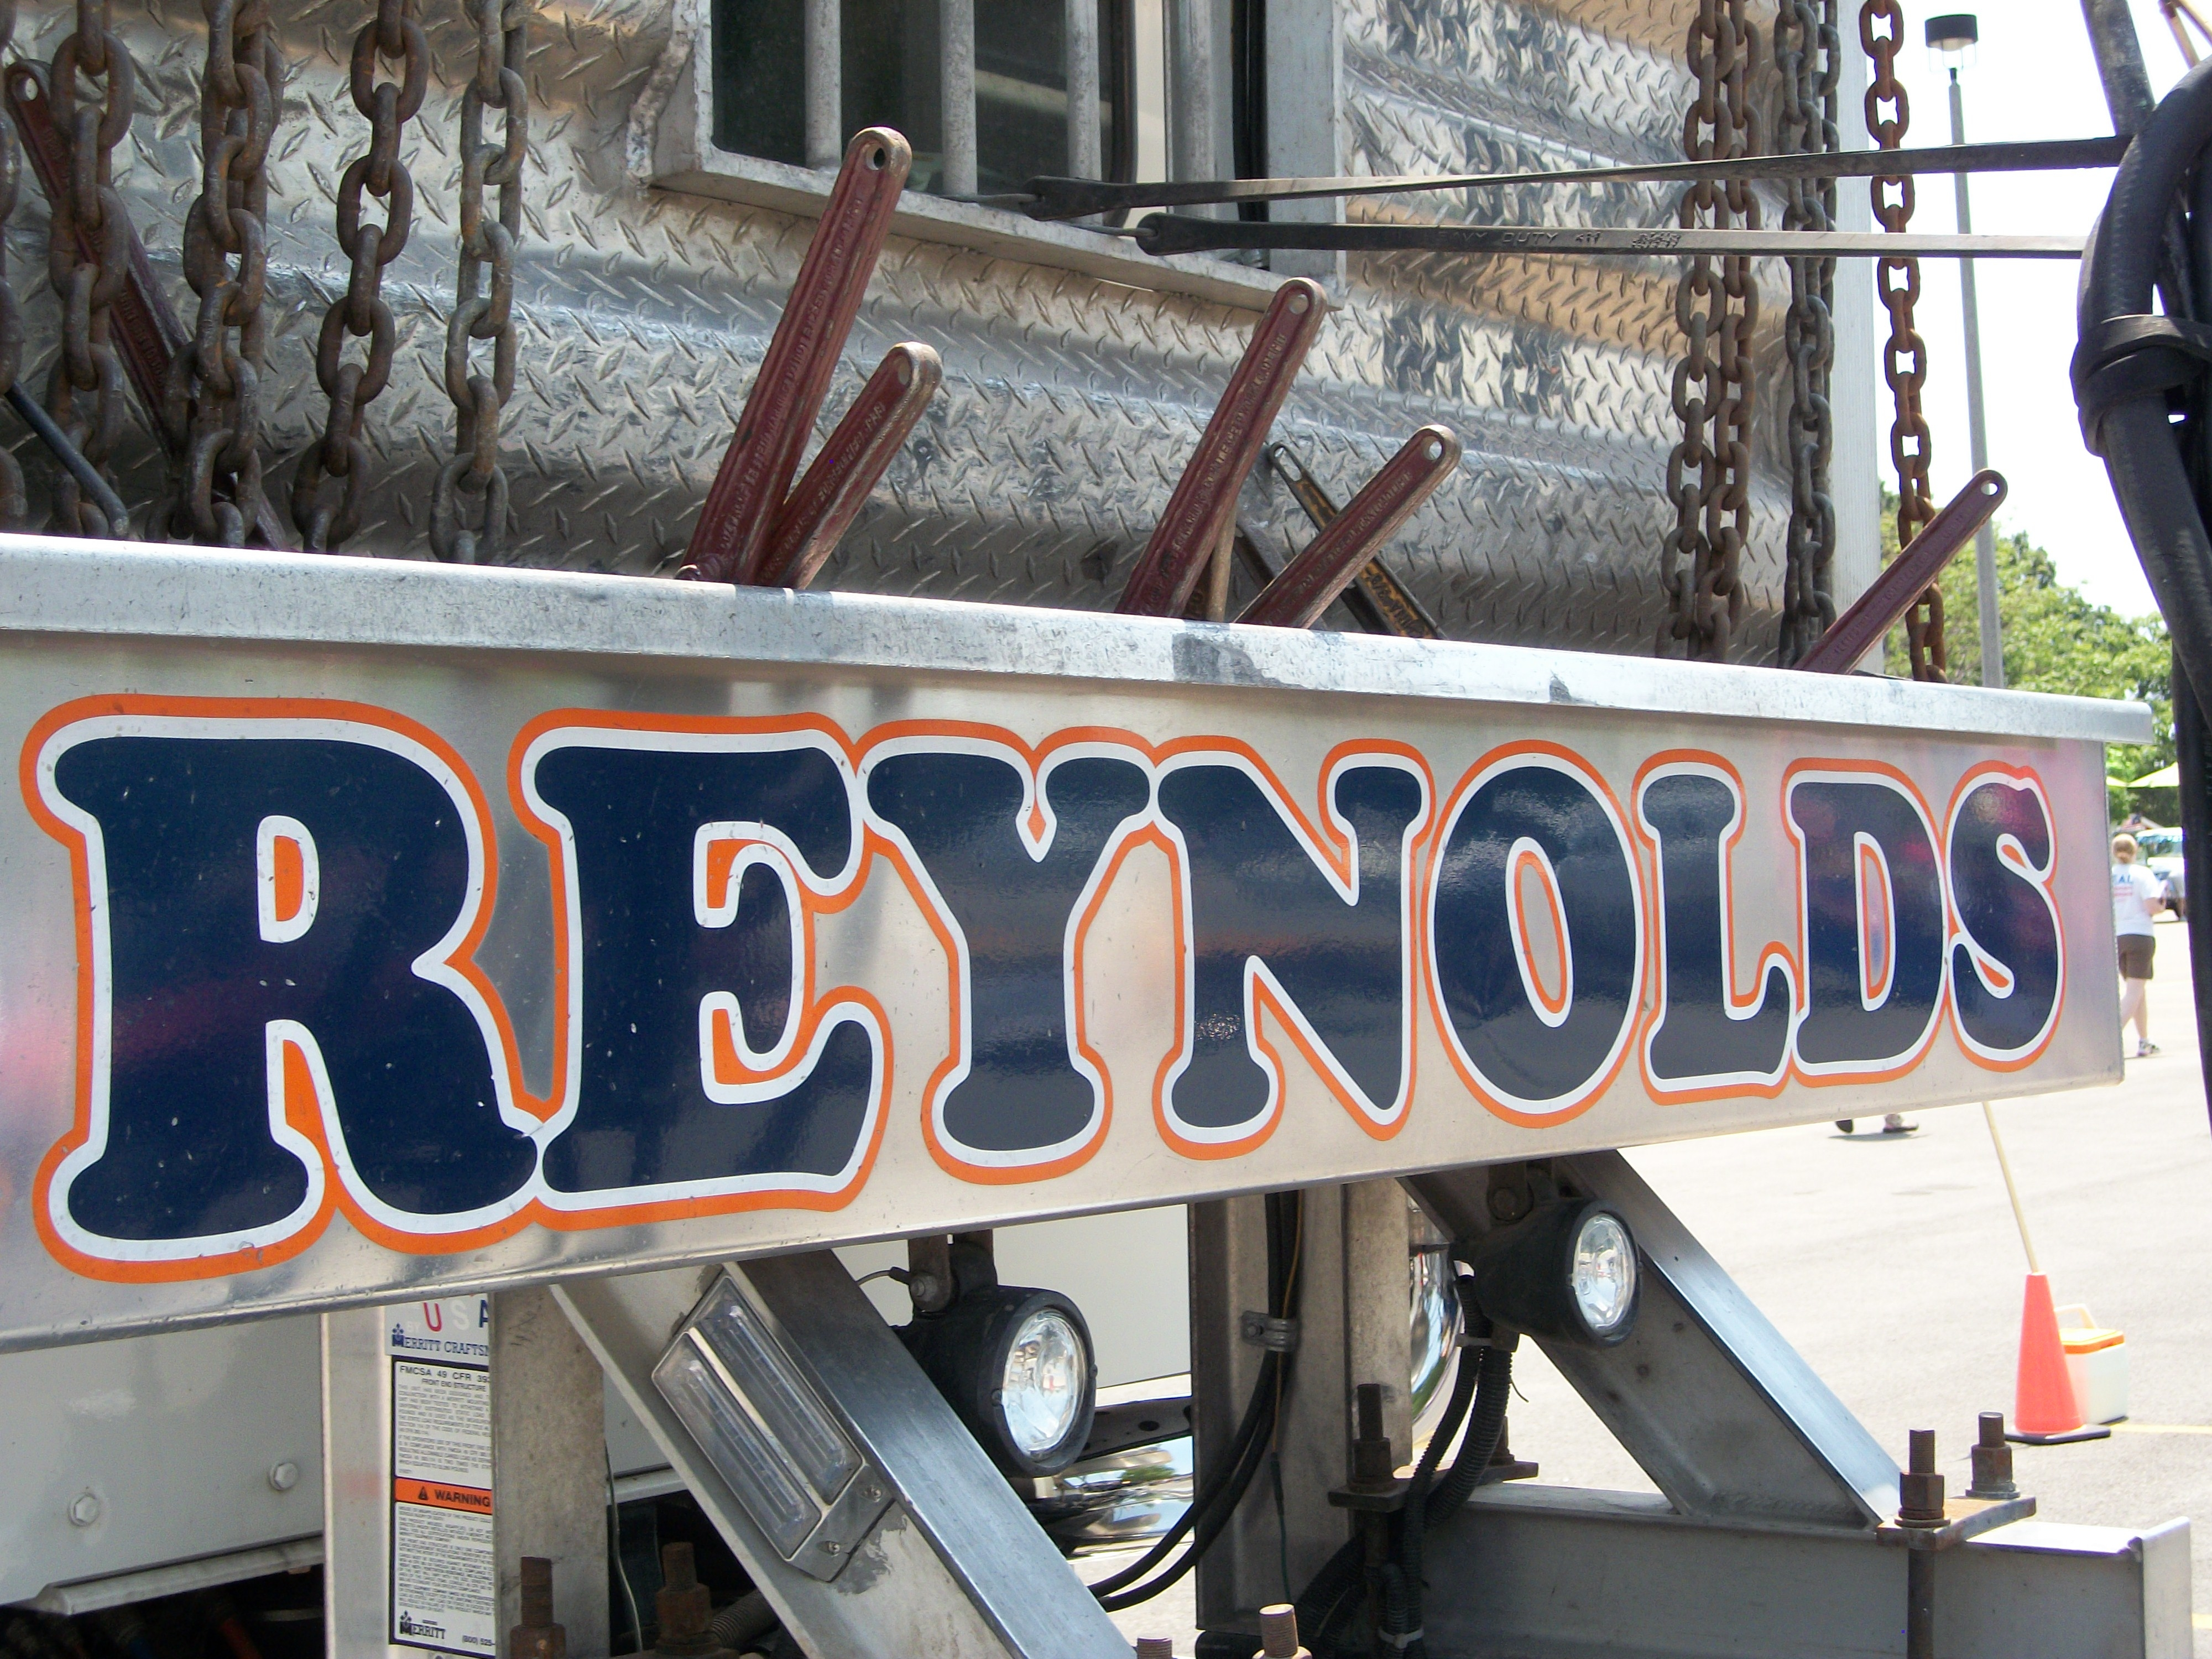 Reynolds Towing Service image 5